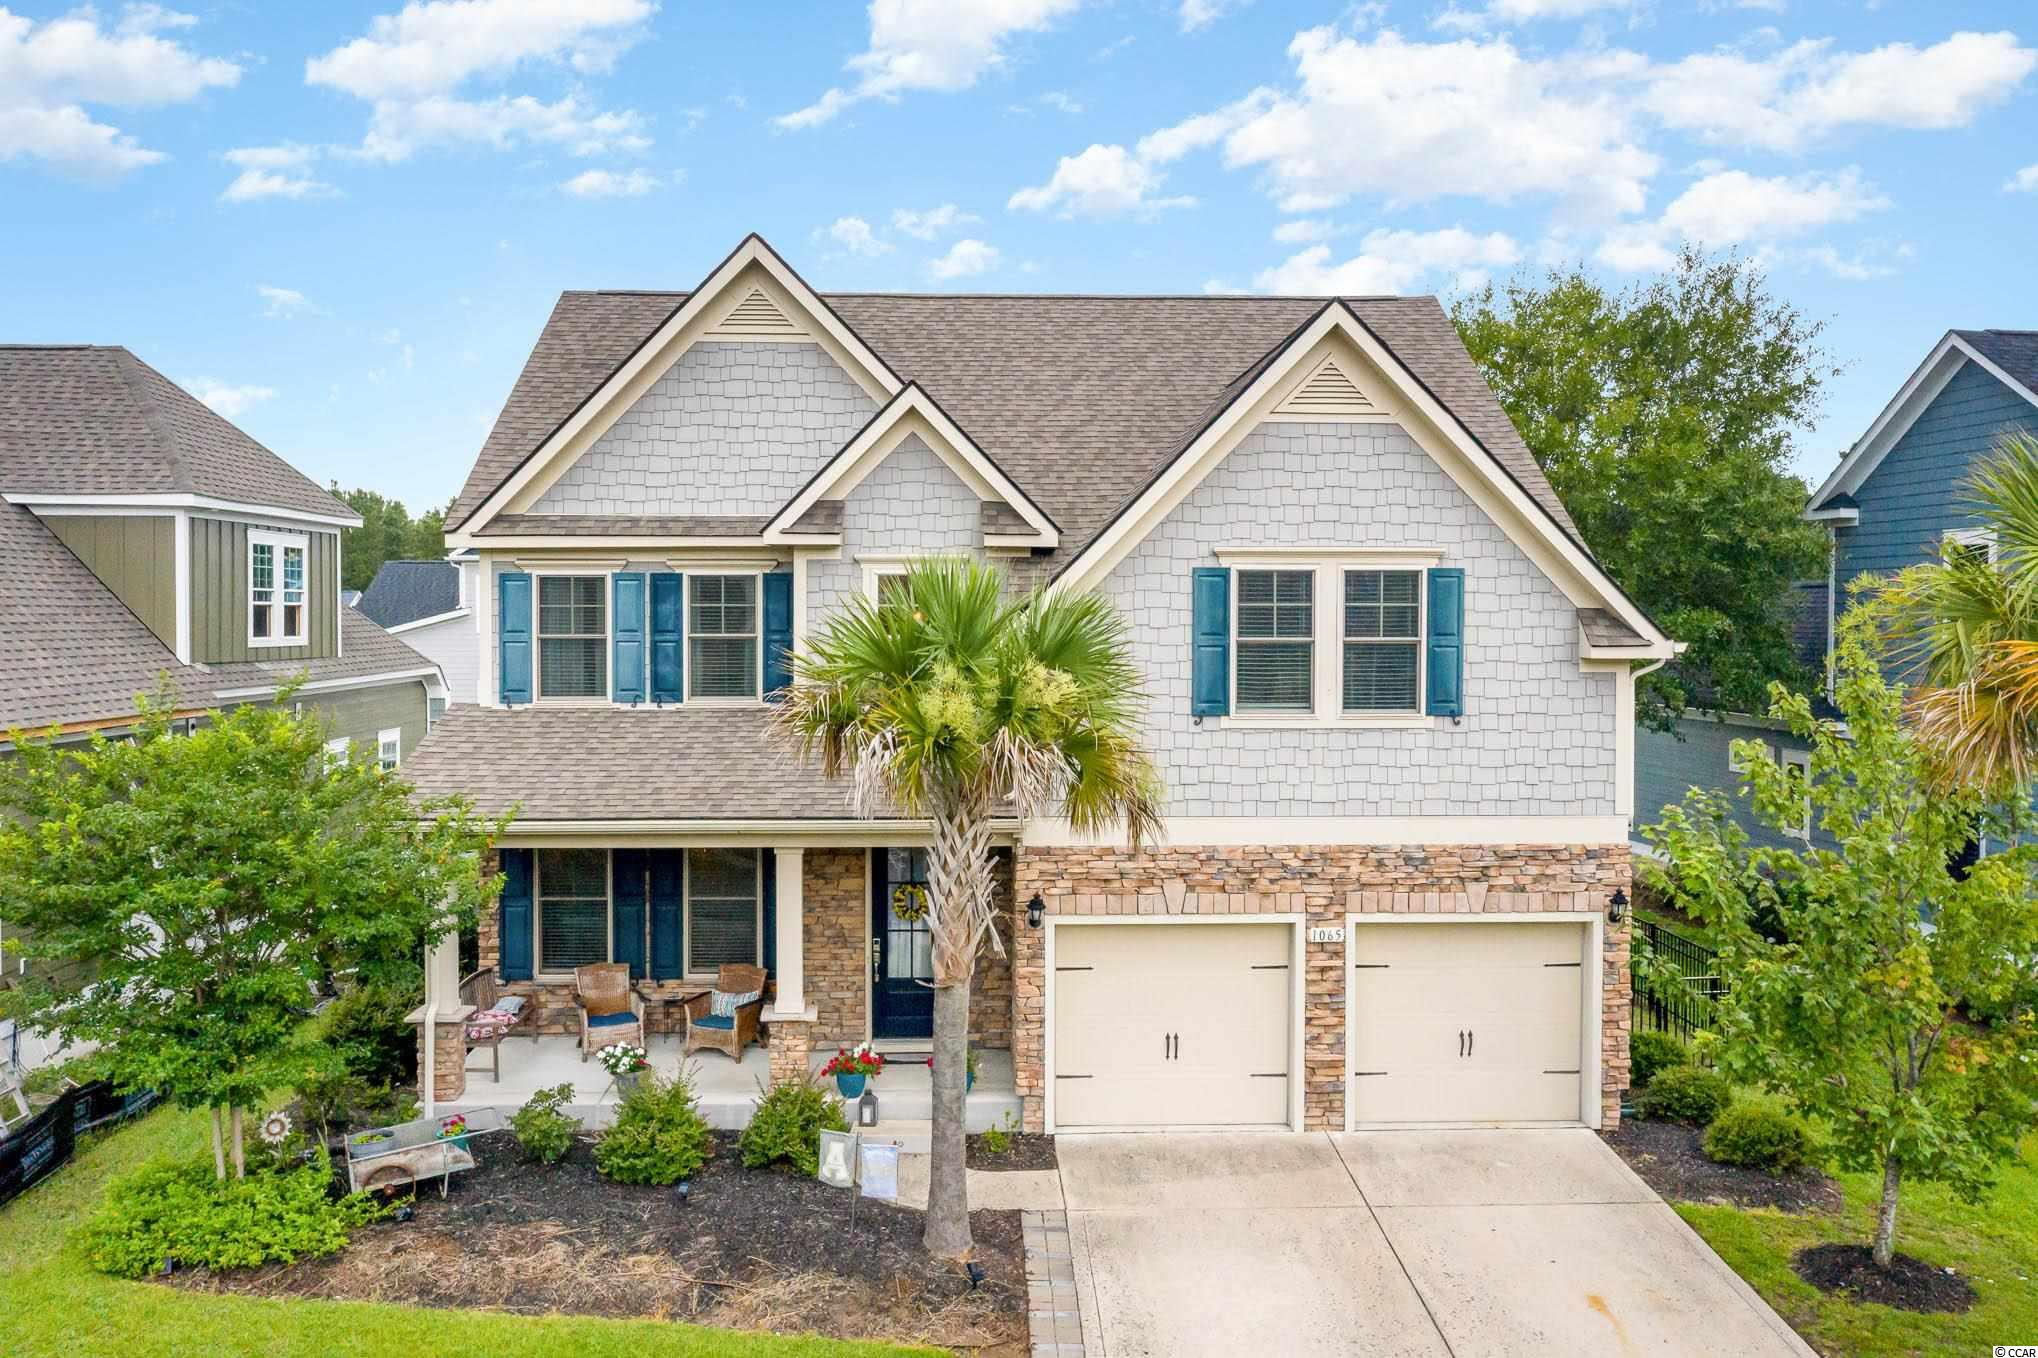 1065 East Isle of Palms Ave. Myrtle Beach, SC 29579